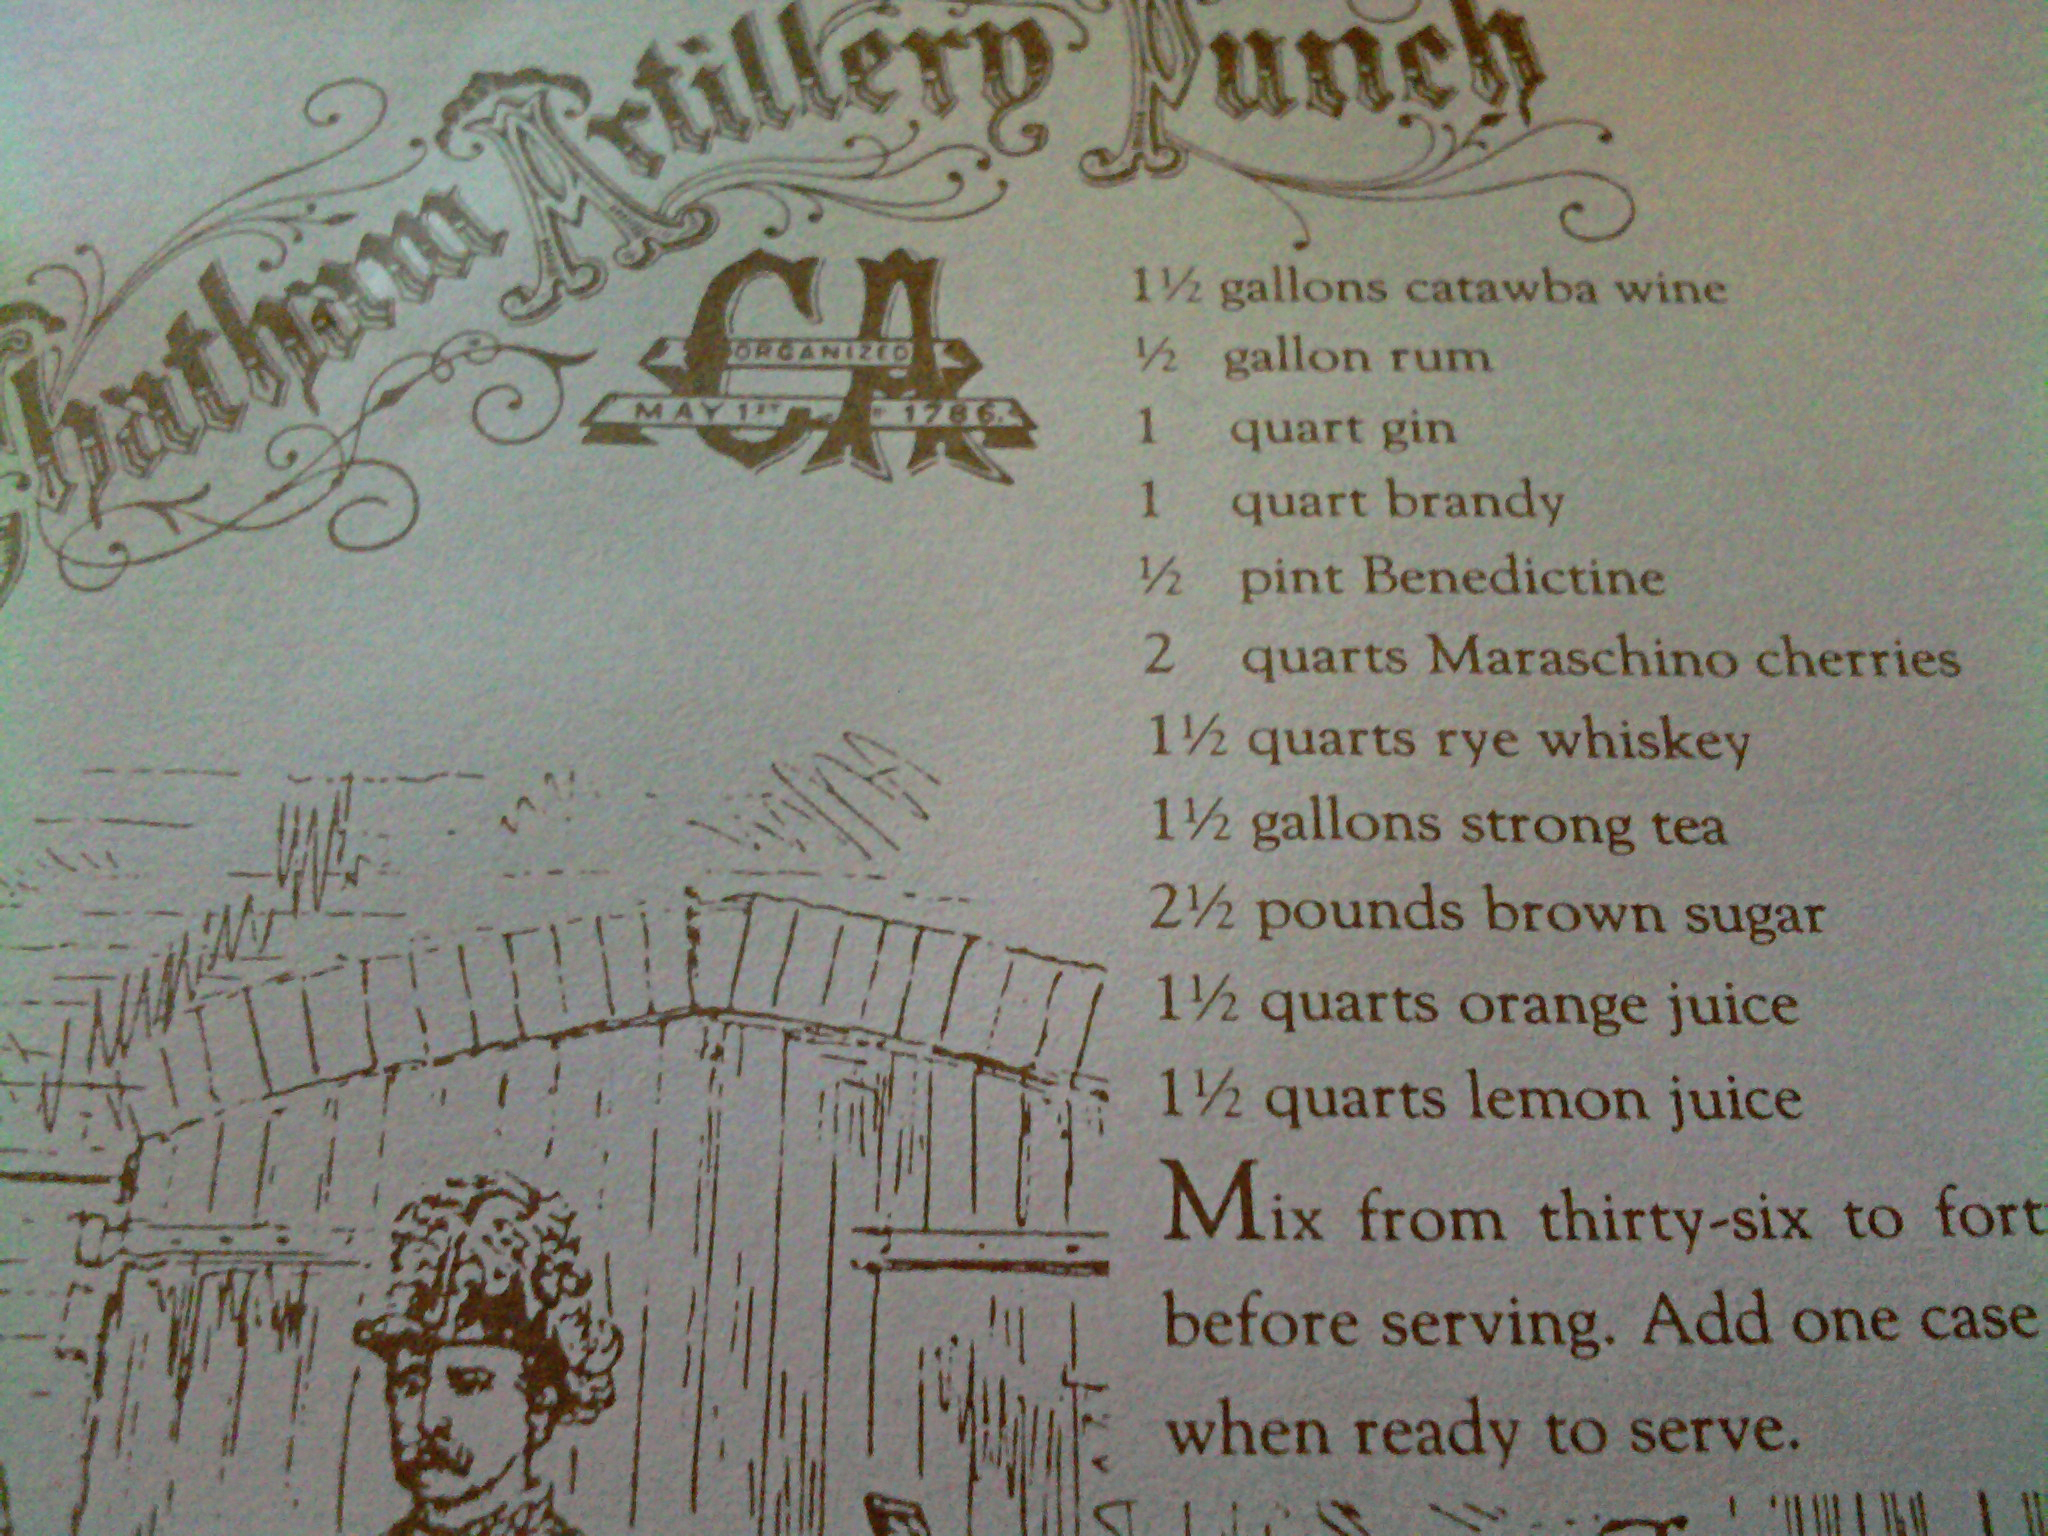 Artillery Punch at River House | Explore fifteenthirty's pho ...